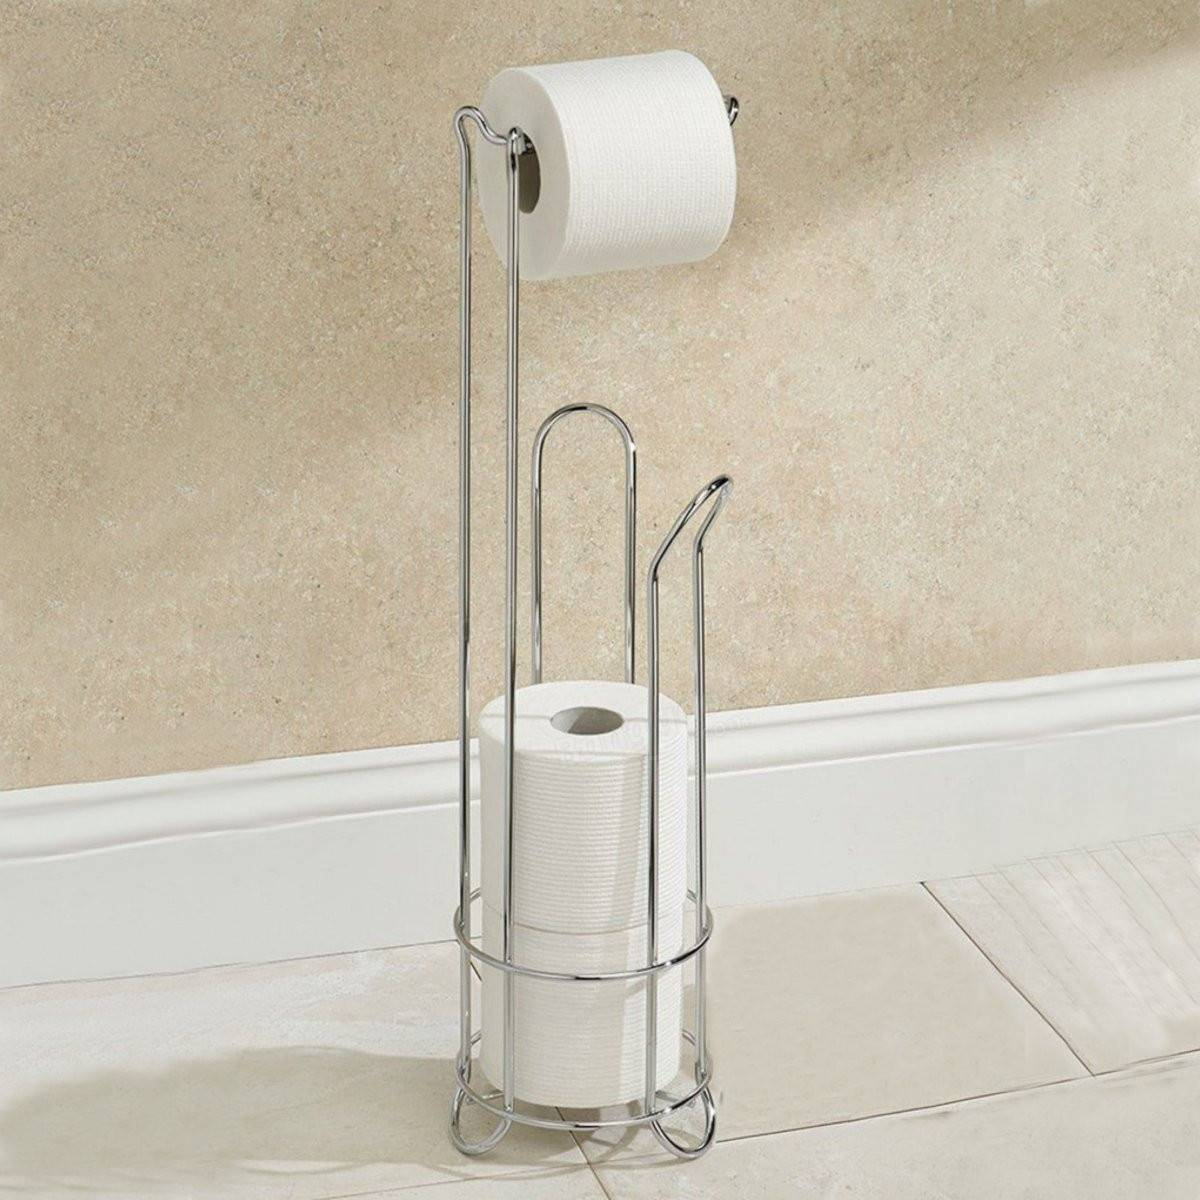 Stainless Steel Toilet Paper Stand Electroplating Stainless Steel Toilet Paper Holder